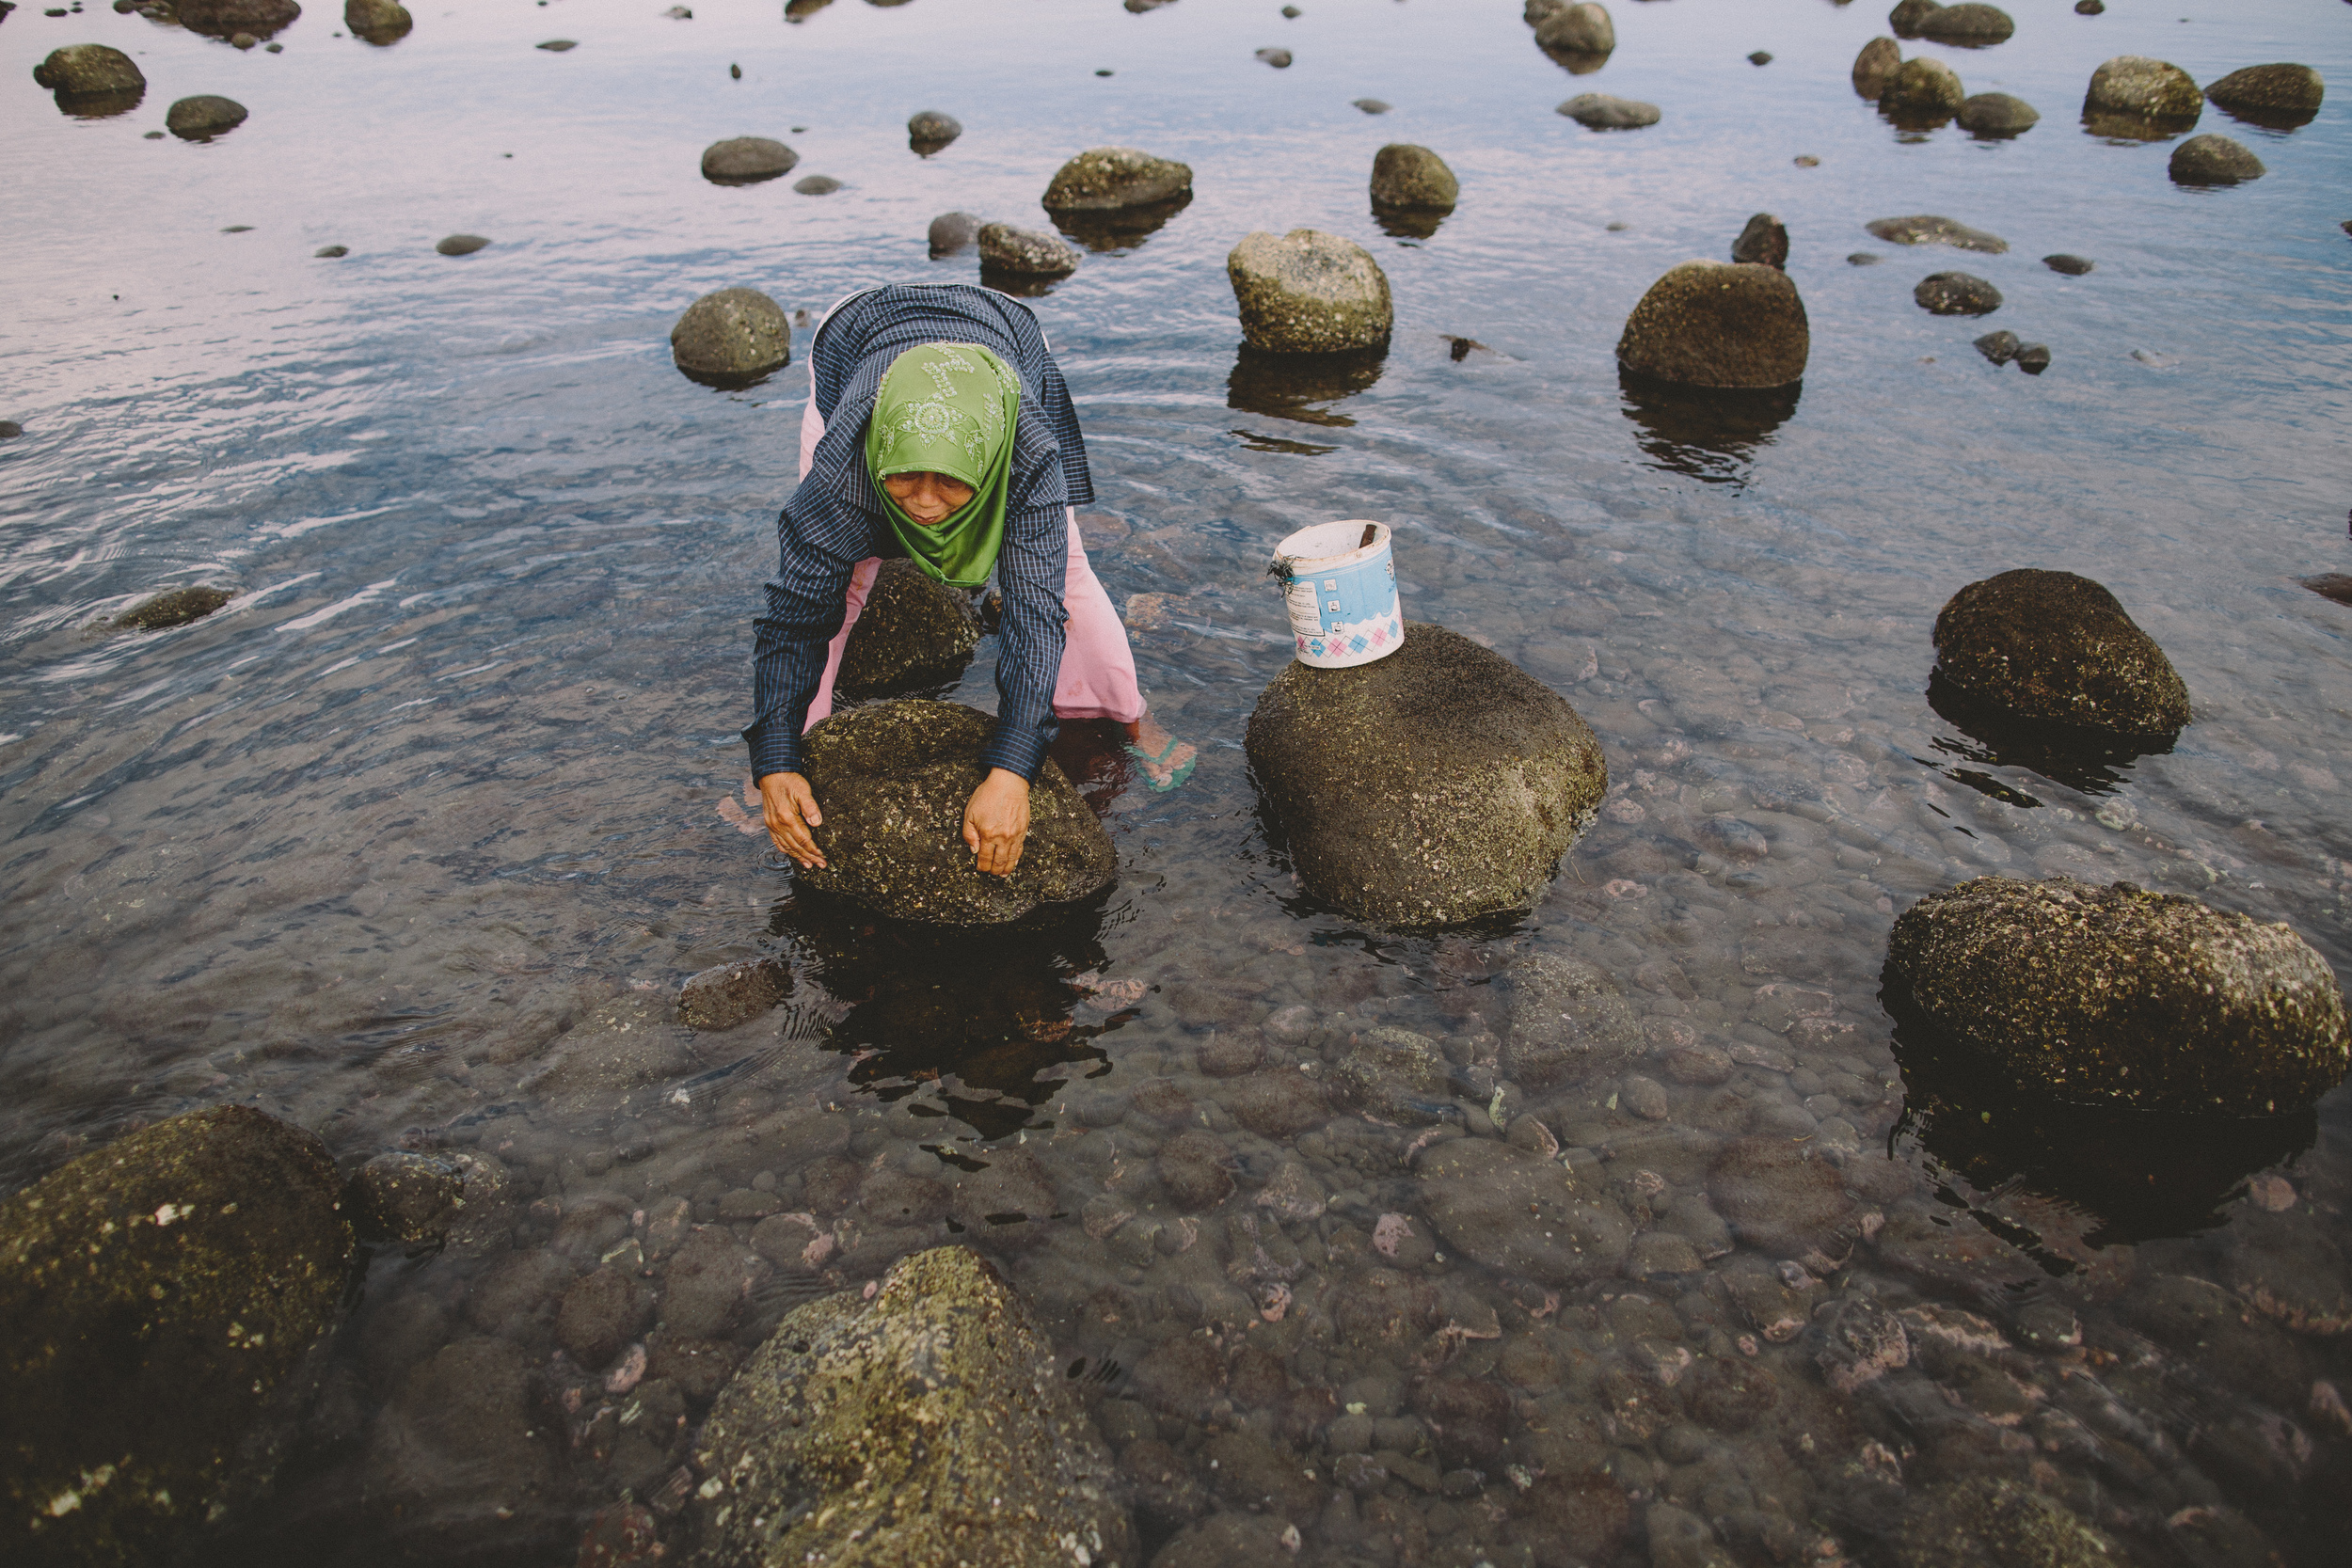 Bali_Indonesia_photo_journalism_shellfish_collecting_global_eyes_media_004.jpg